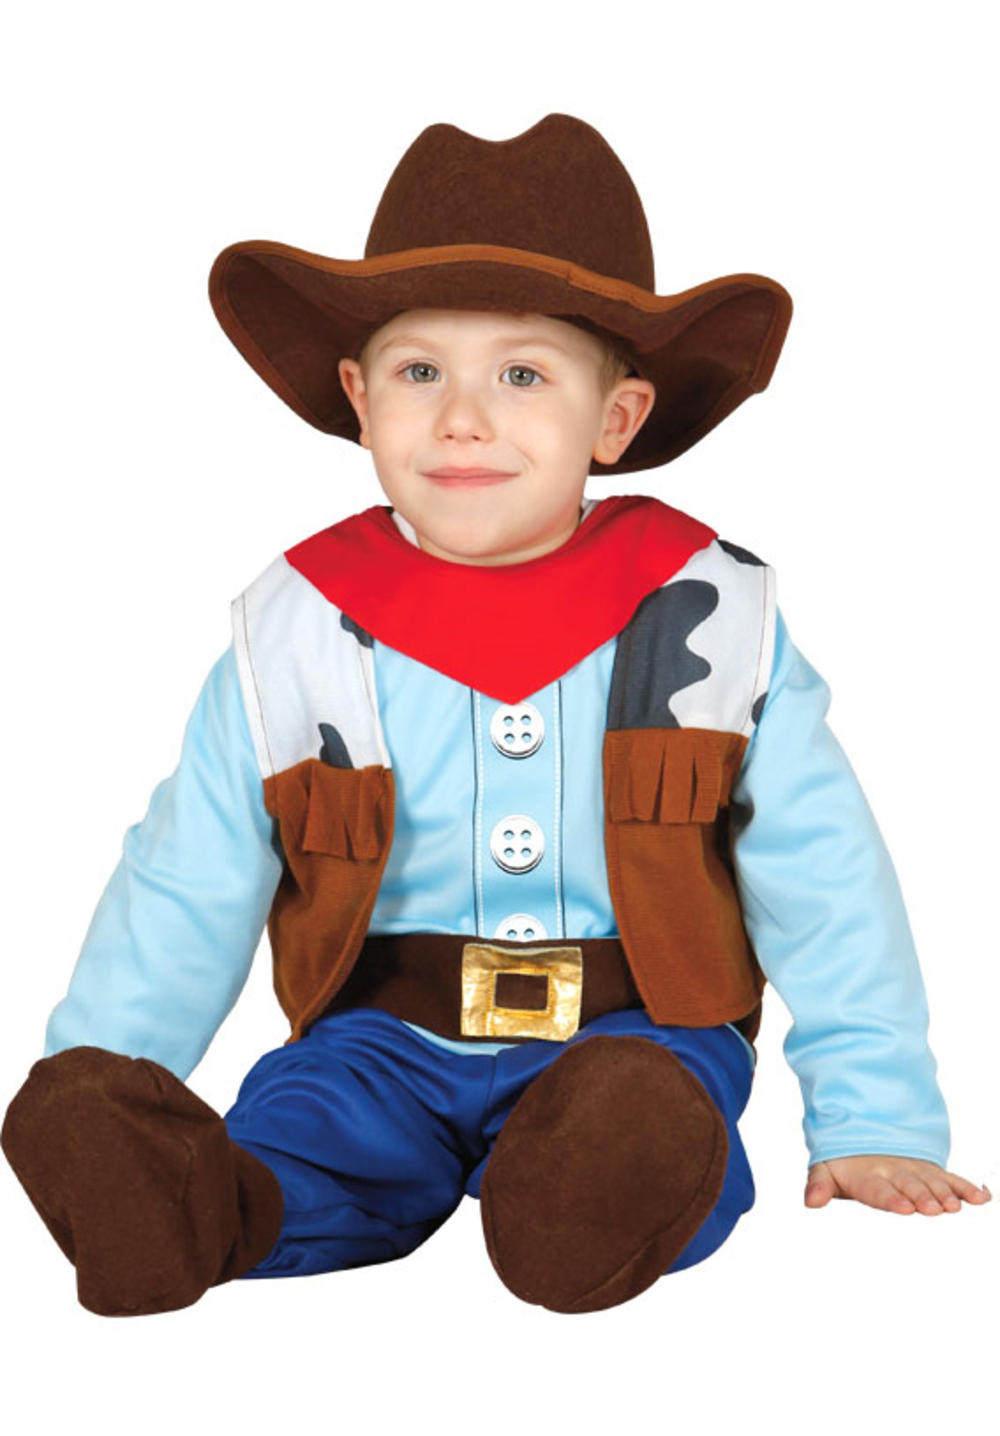 Baby Cowboy Boys Fancy Dress Wild West Western Kids Toddlers Costume Outfit